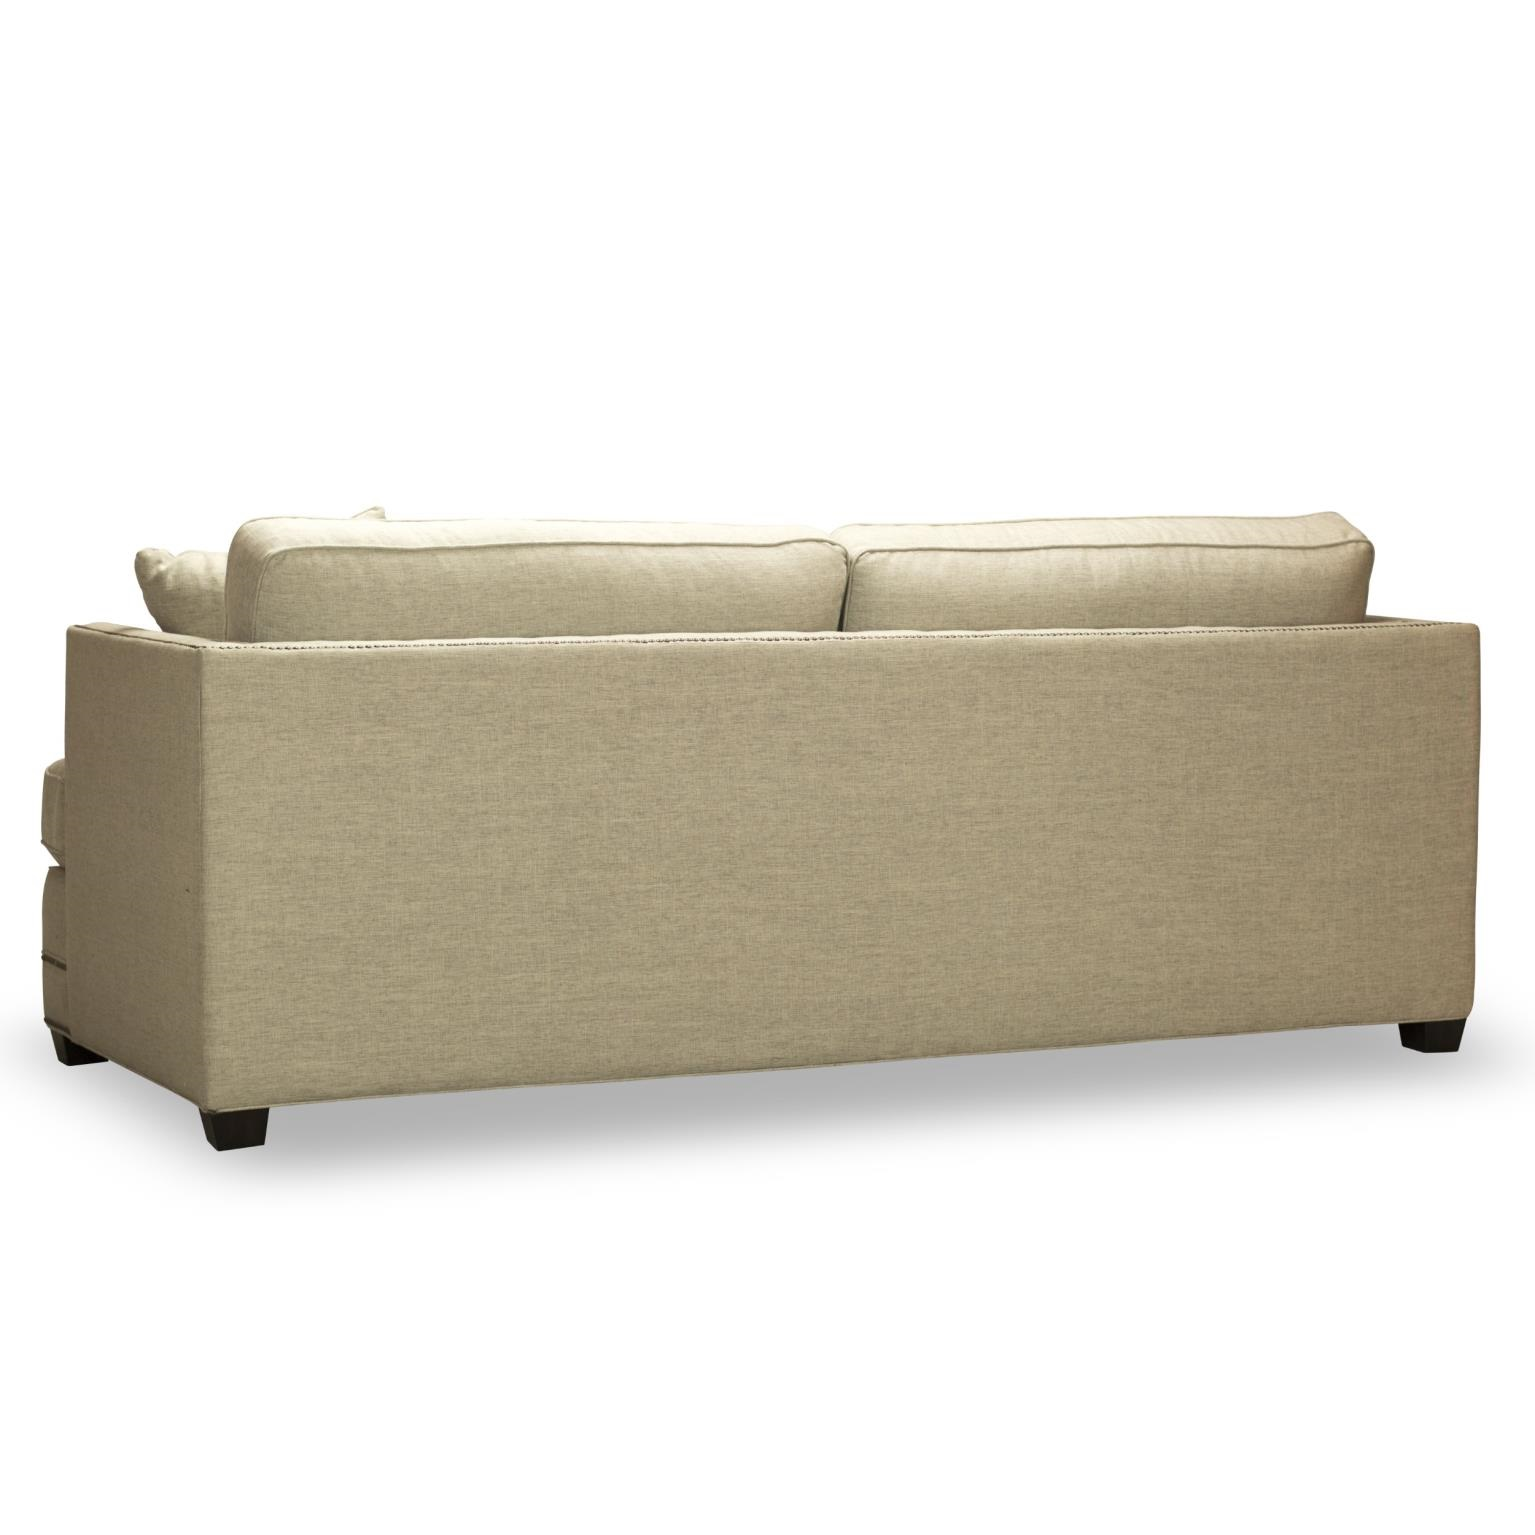 Furniture Markham Markham Sofa Slate Gray Fabric Spectra Home Wd3249 4